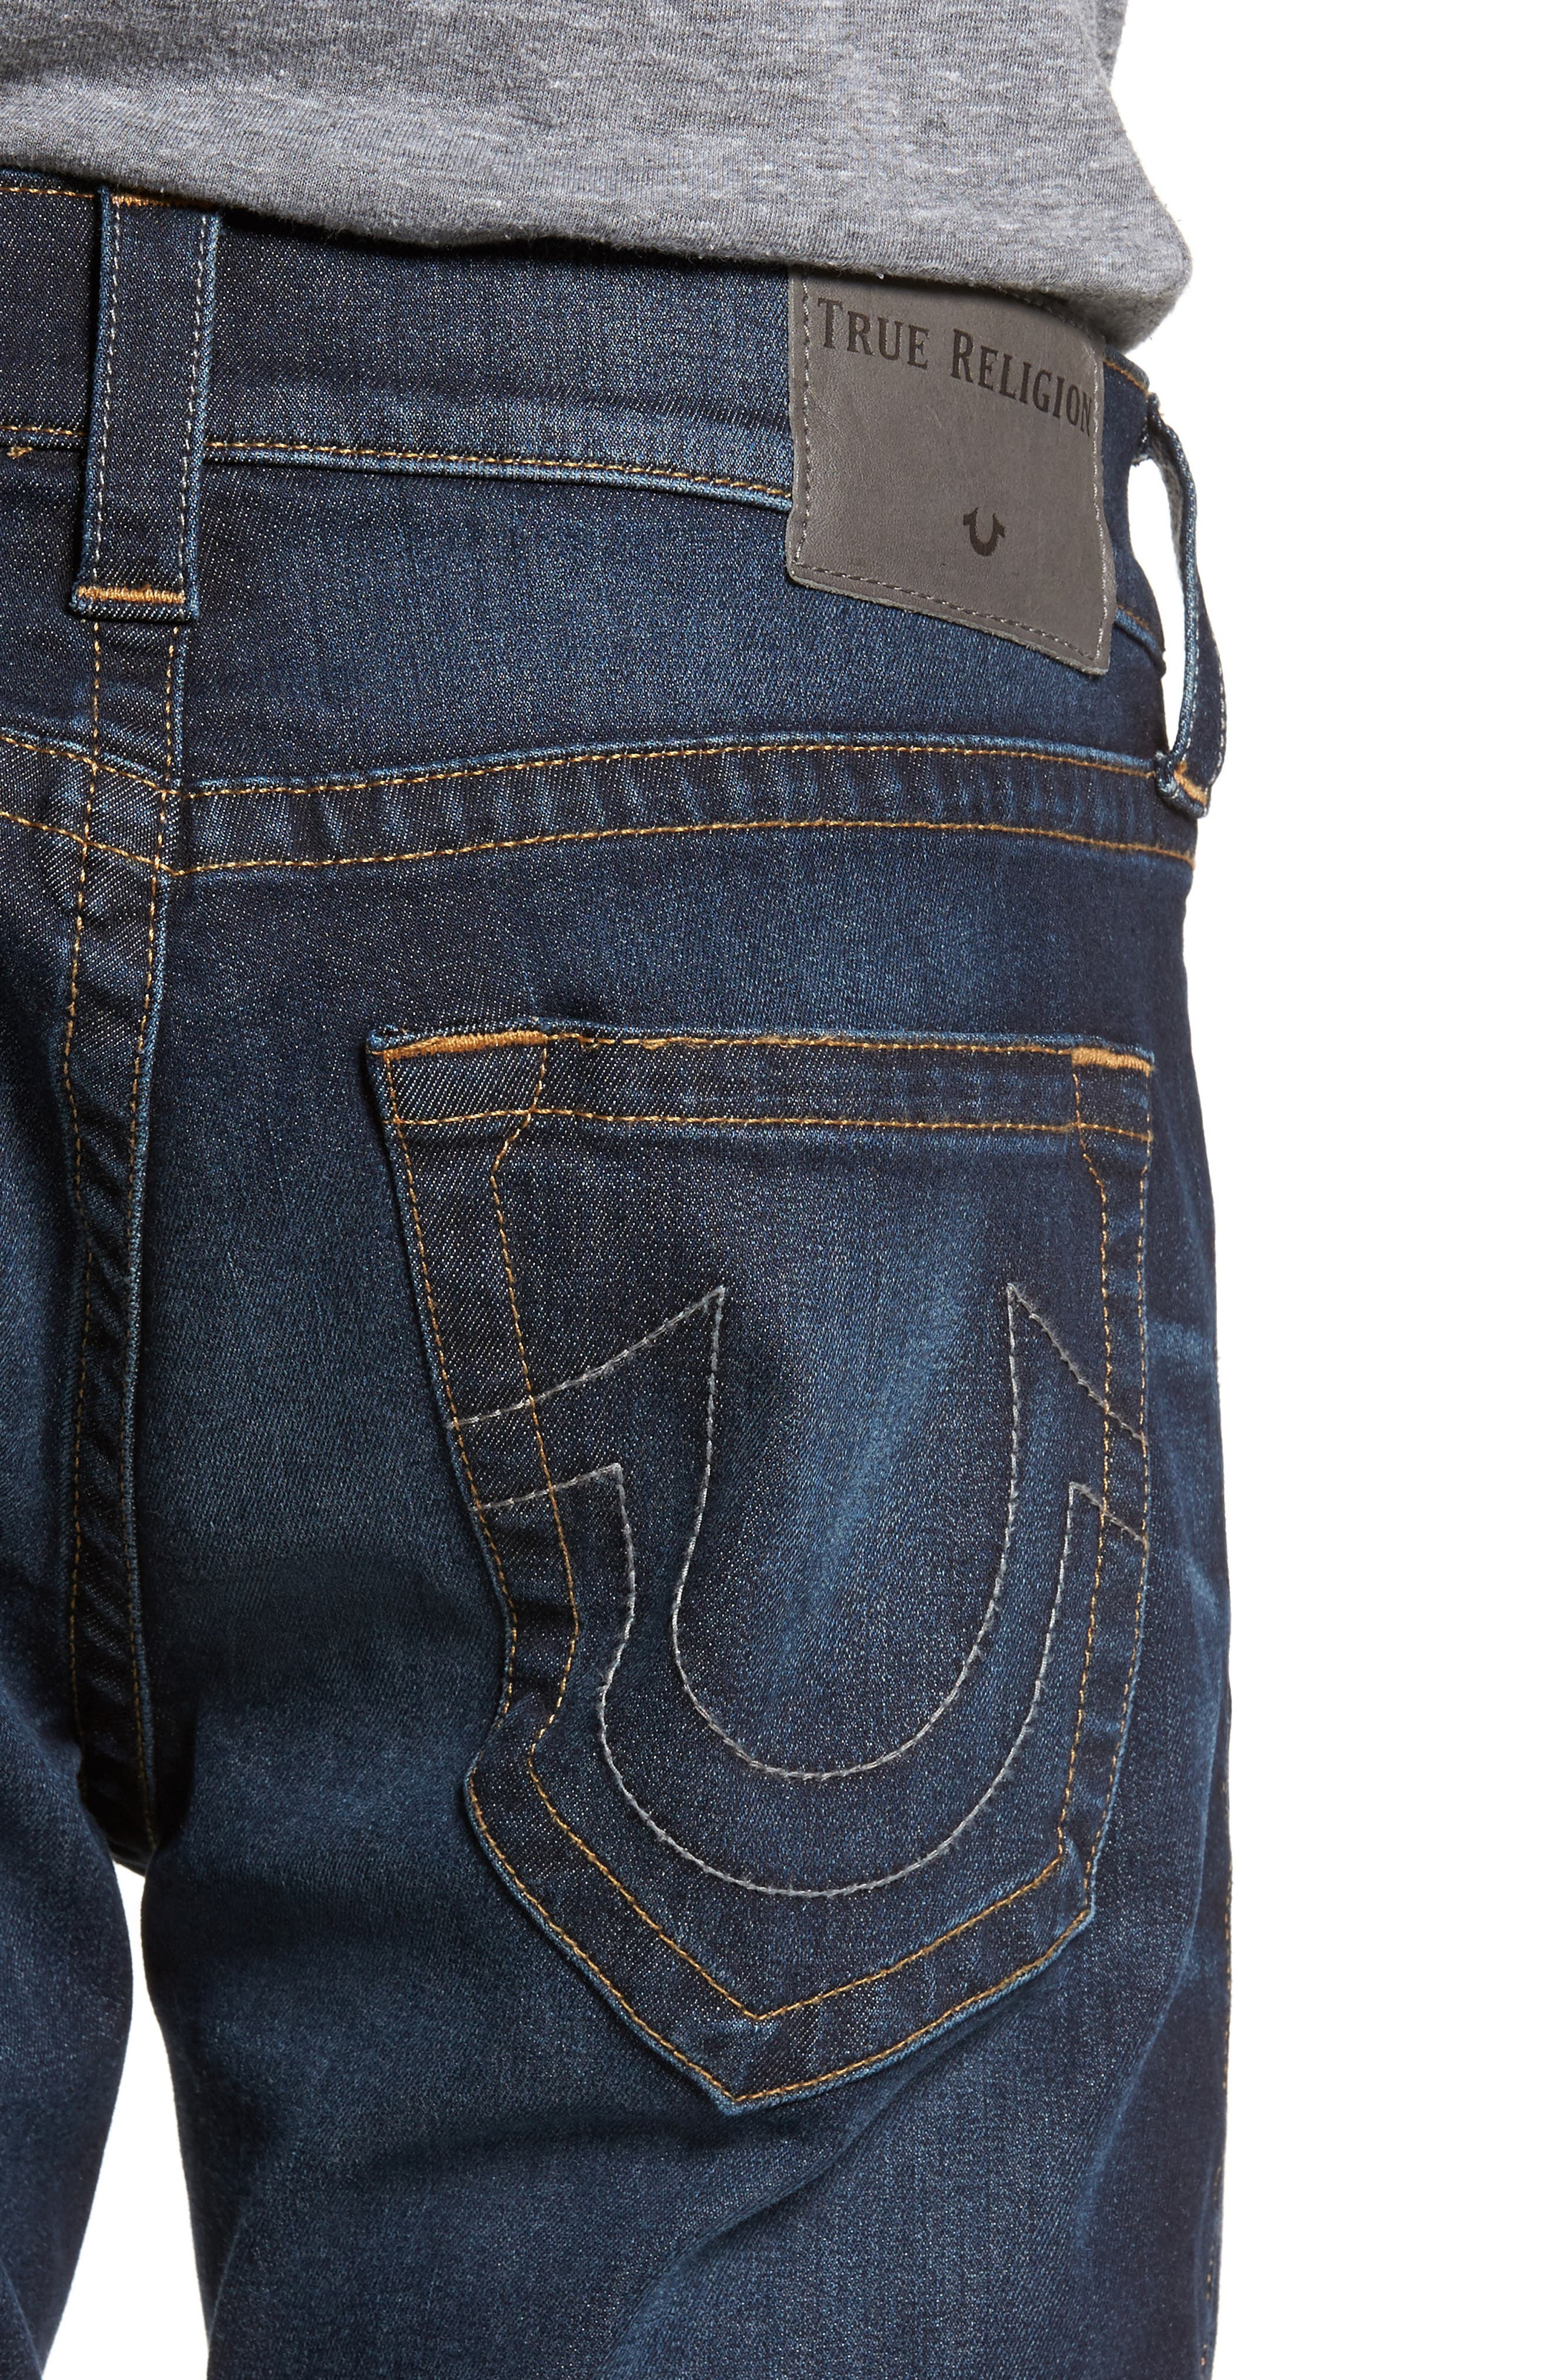 Rocco Skinny Fit Jeans,                             Alternate thumbnail 4, color,                             Dark Indigo Luxe